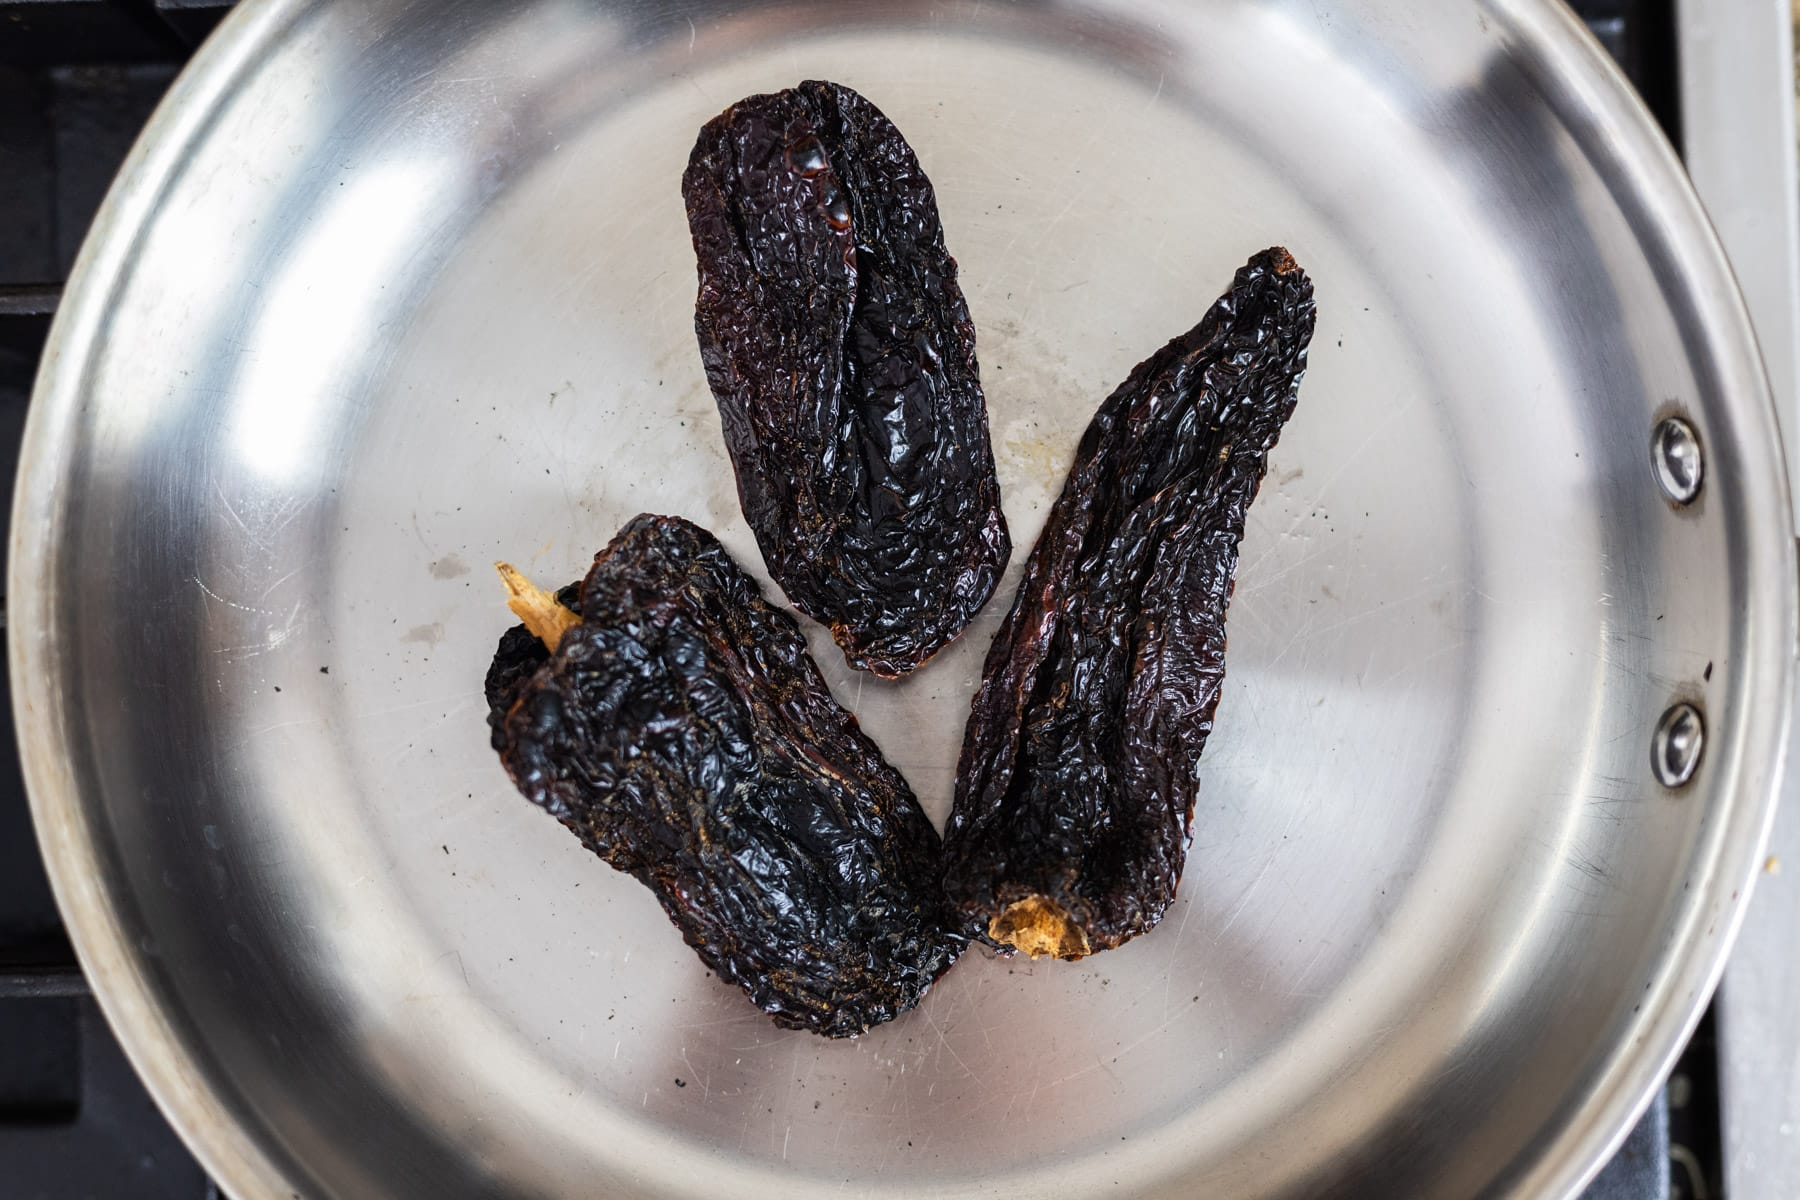 Toasted ancho chilis in a skillet.